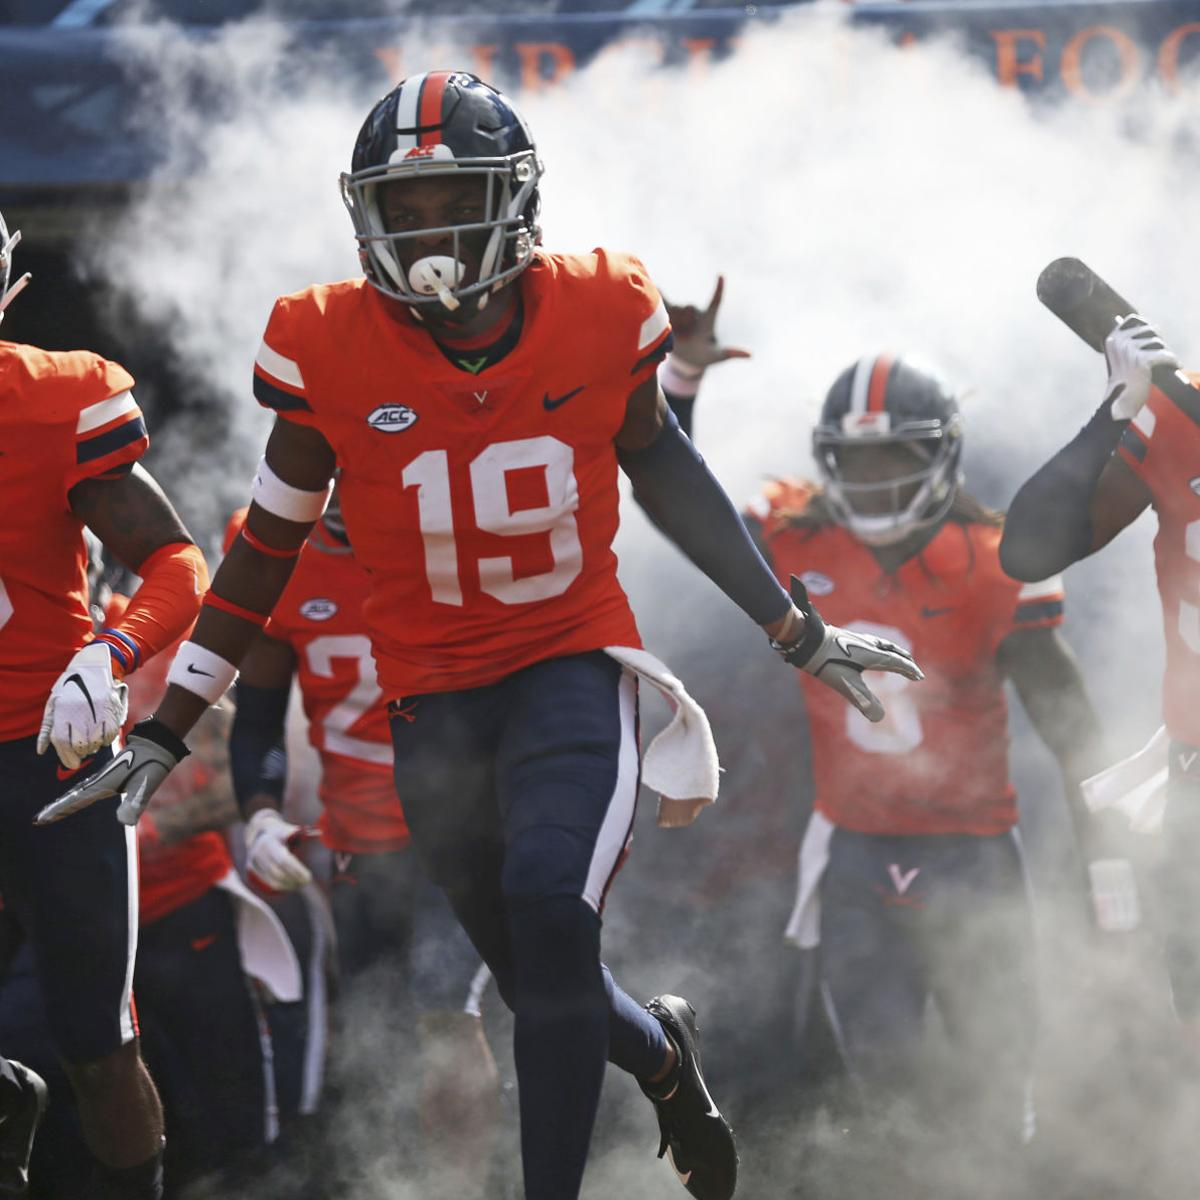 Virginia Football Team Nationally Ranked For The First Time